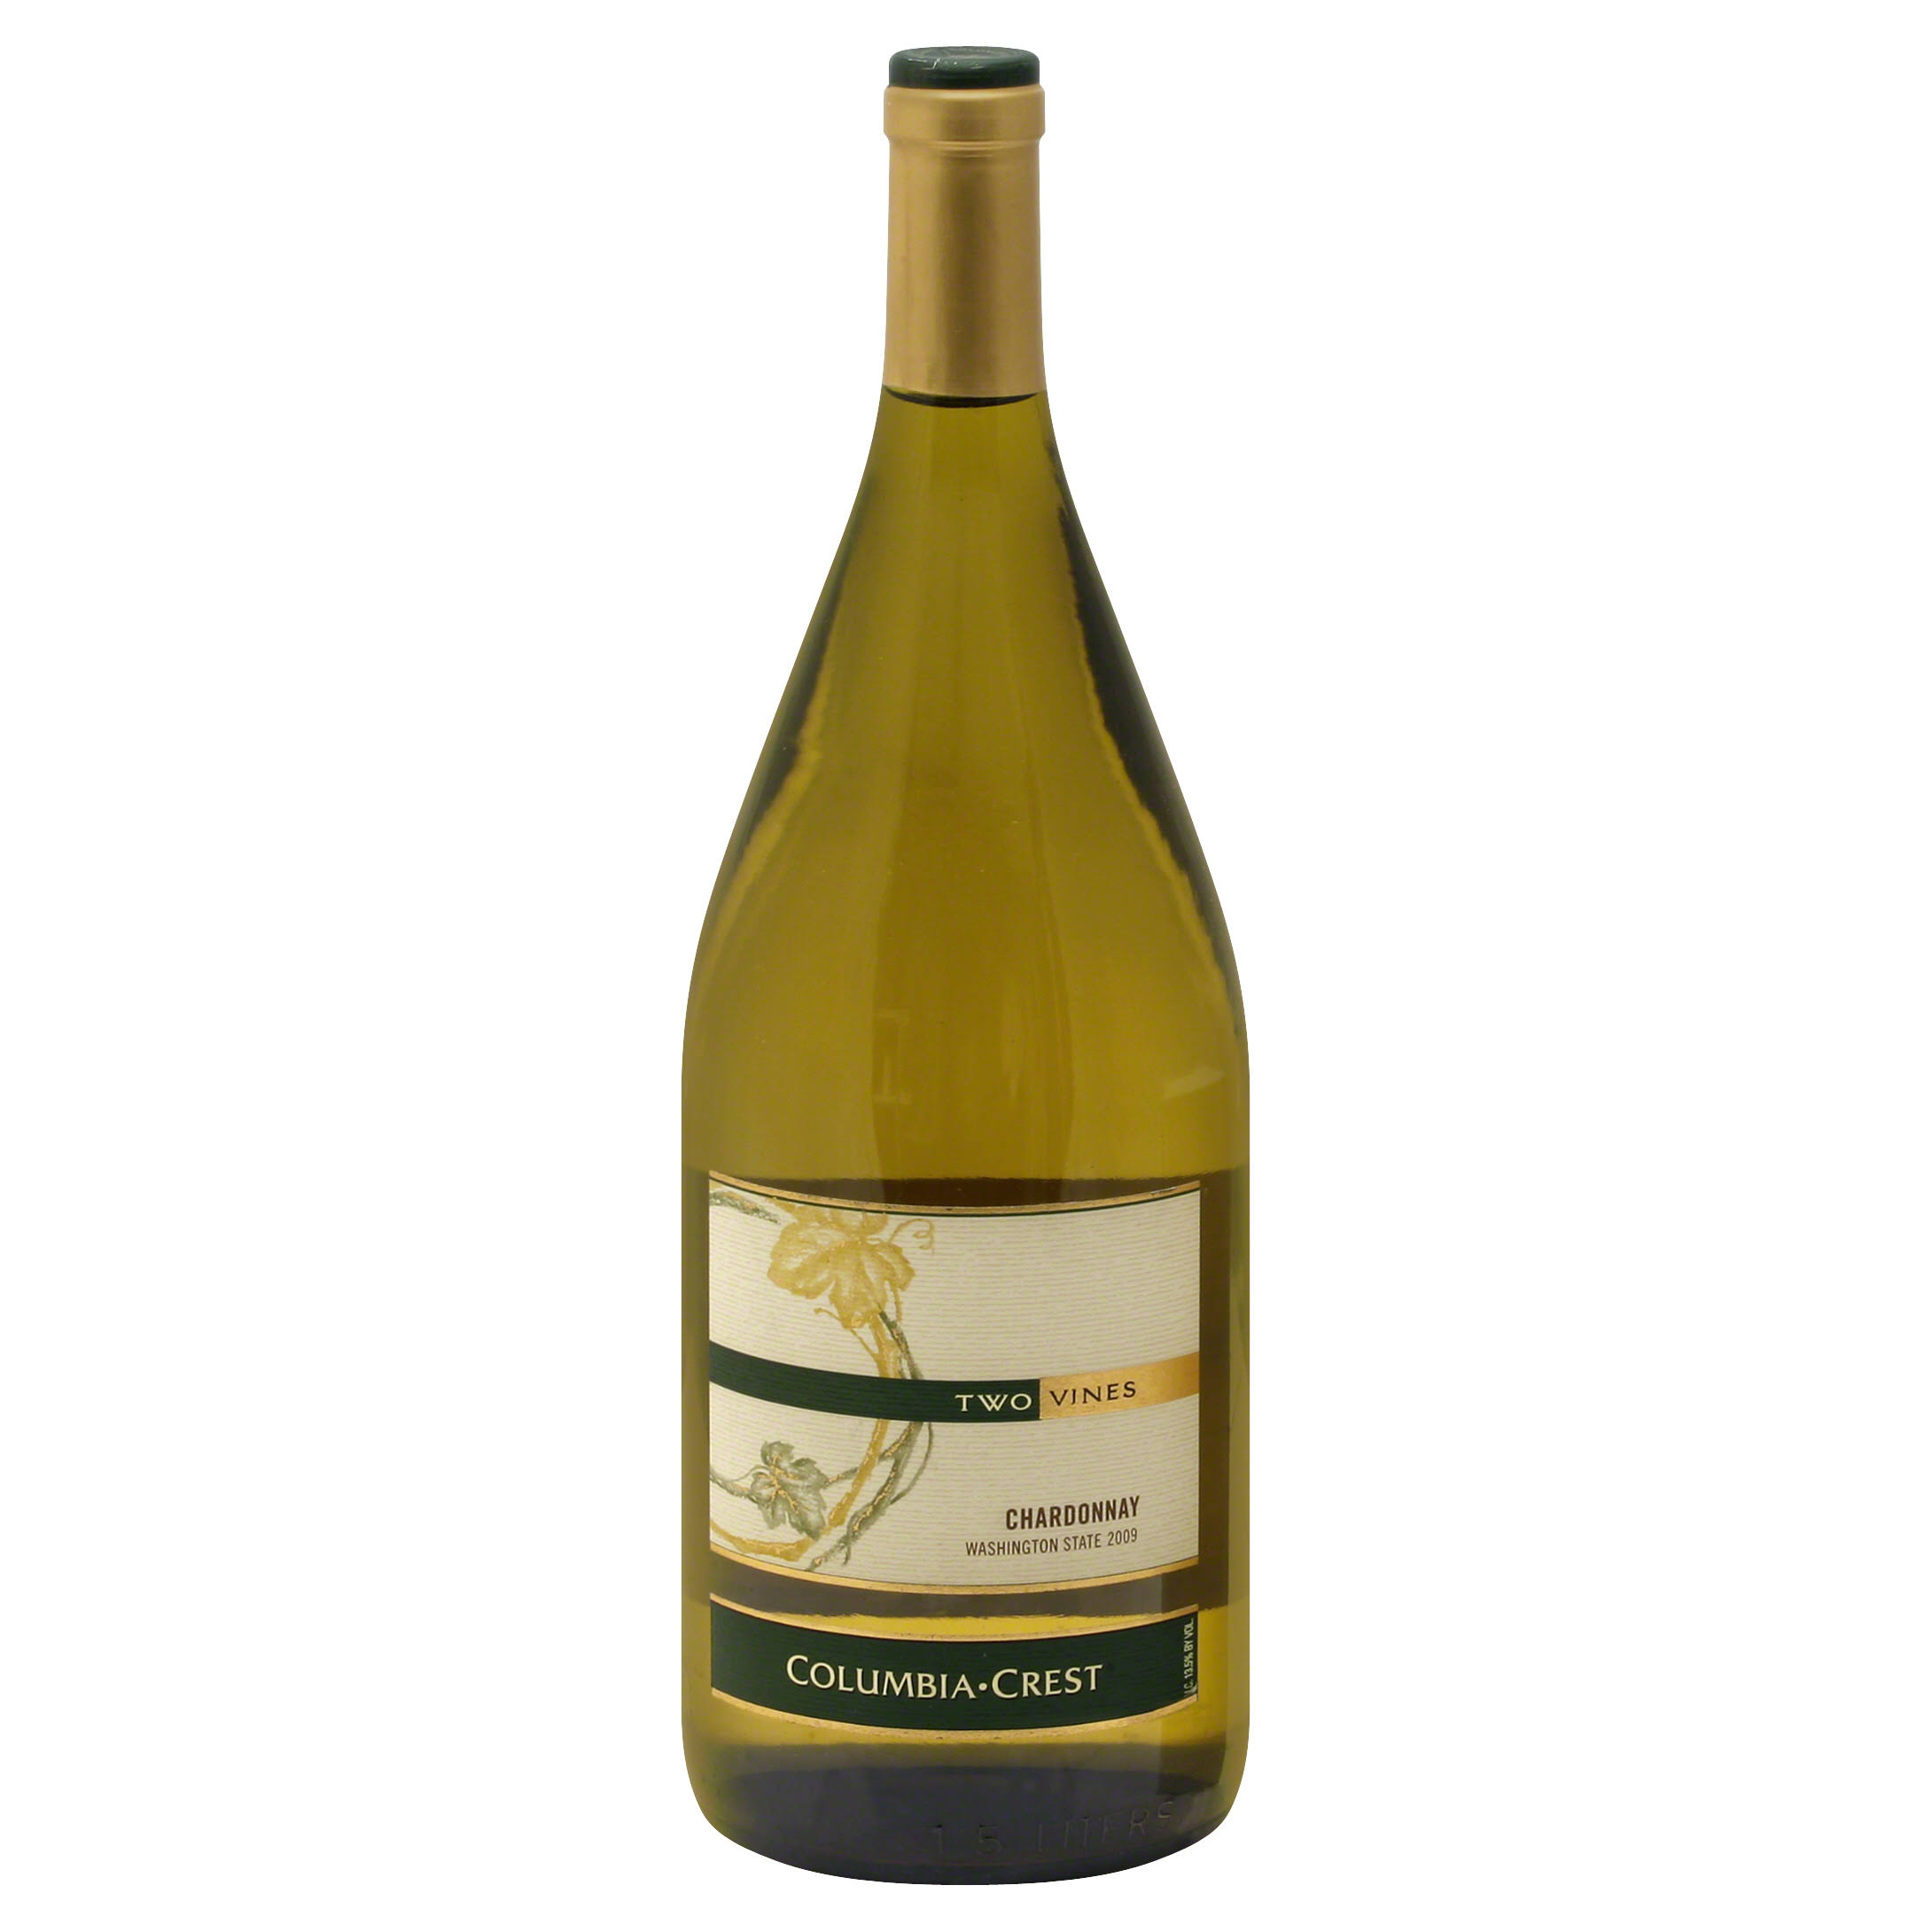 Two Vines Chardonnay, Washington State, 2009 - 750 ml